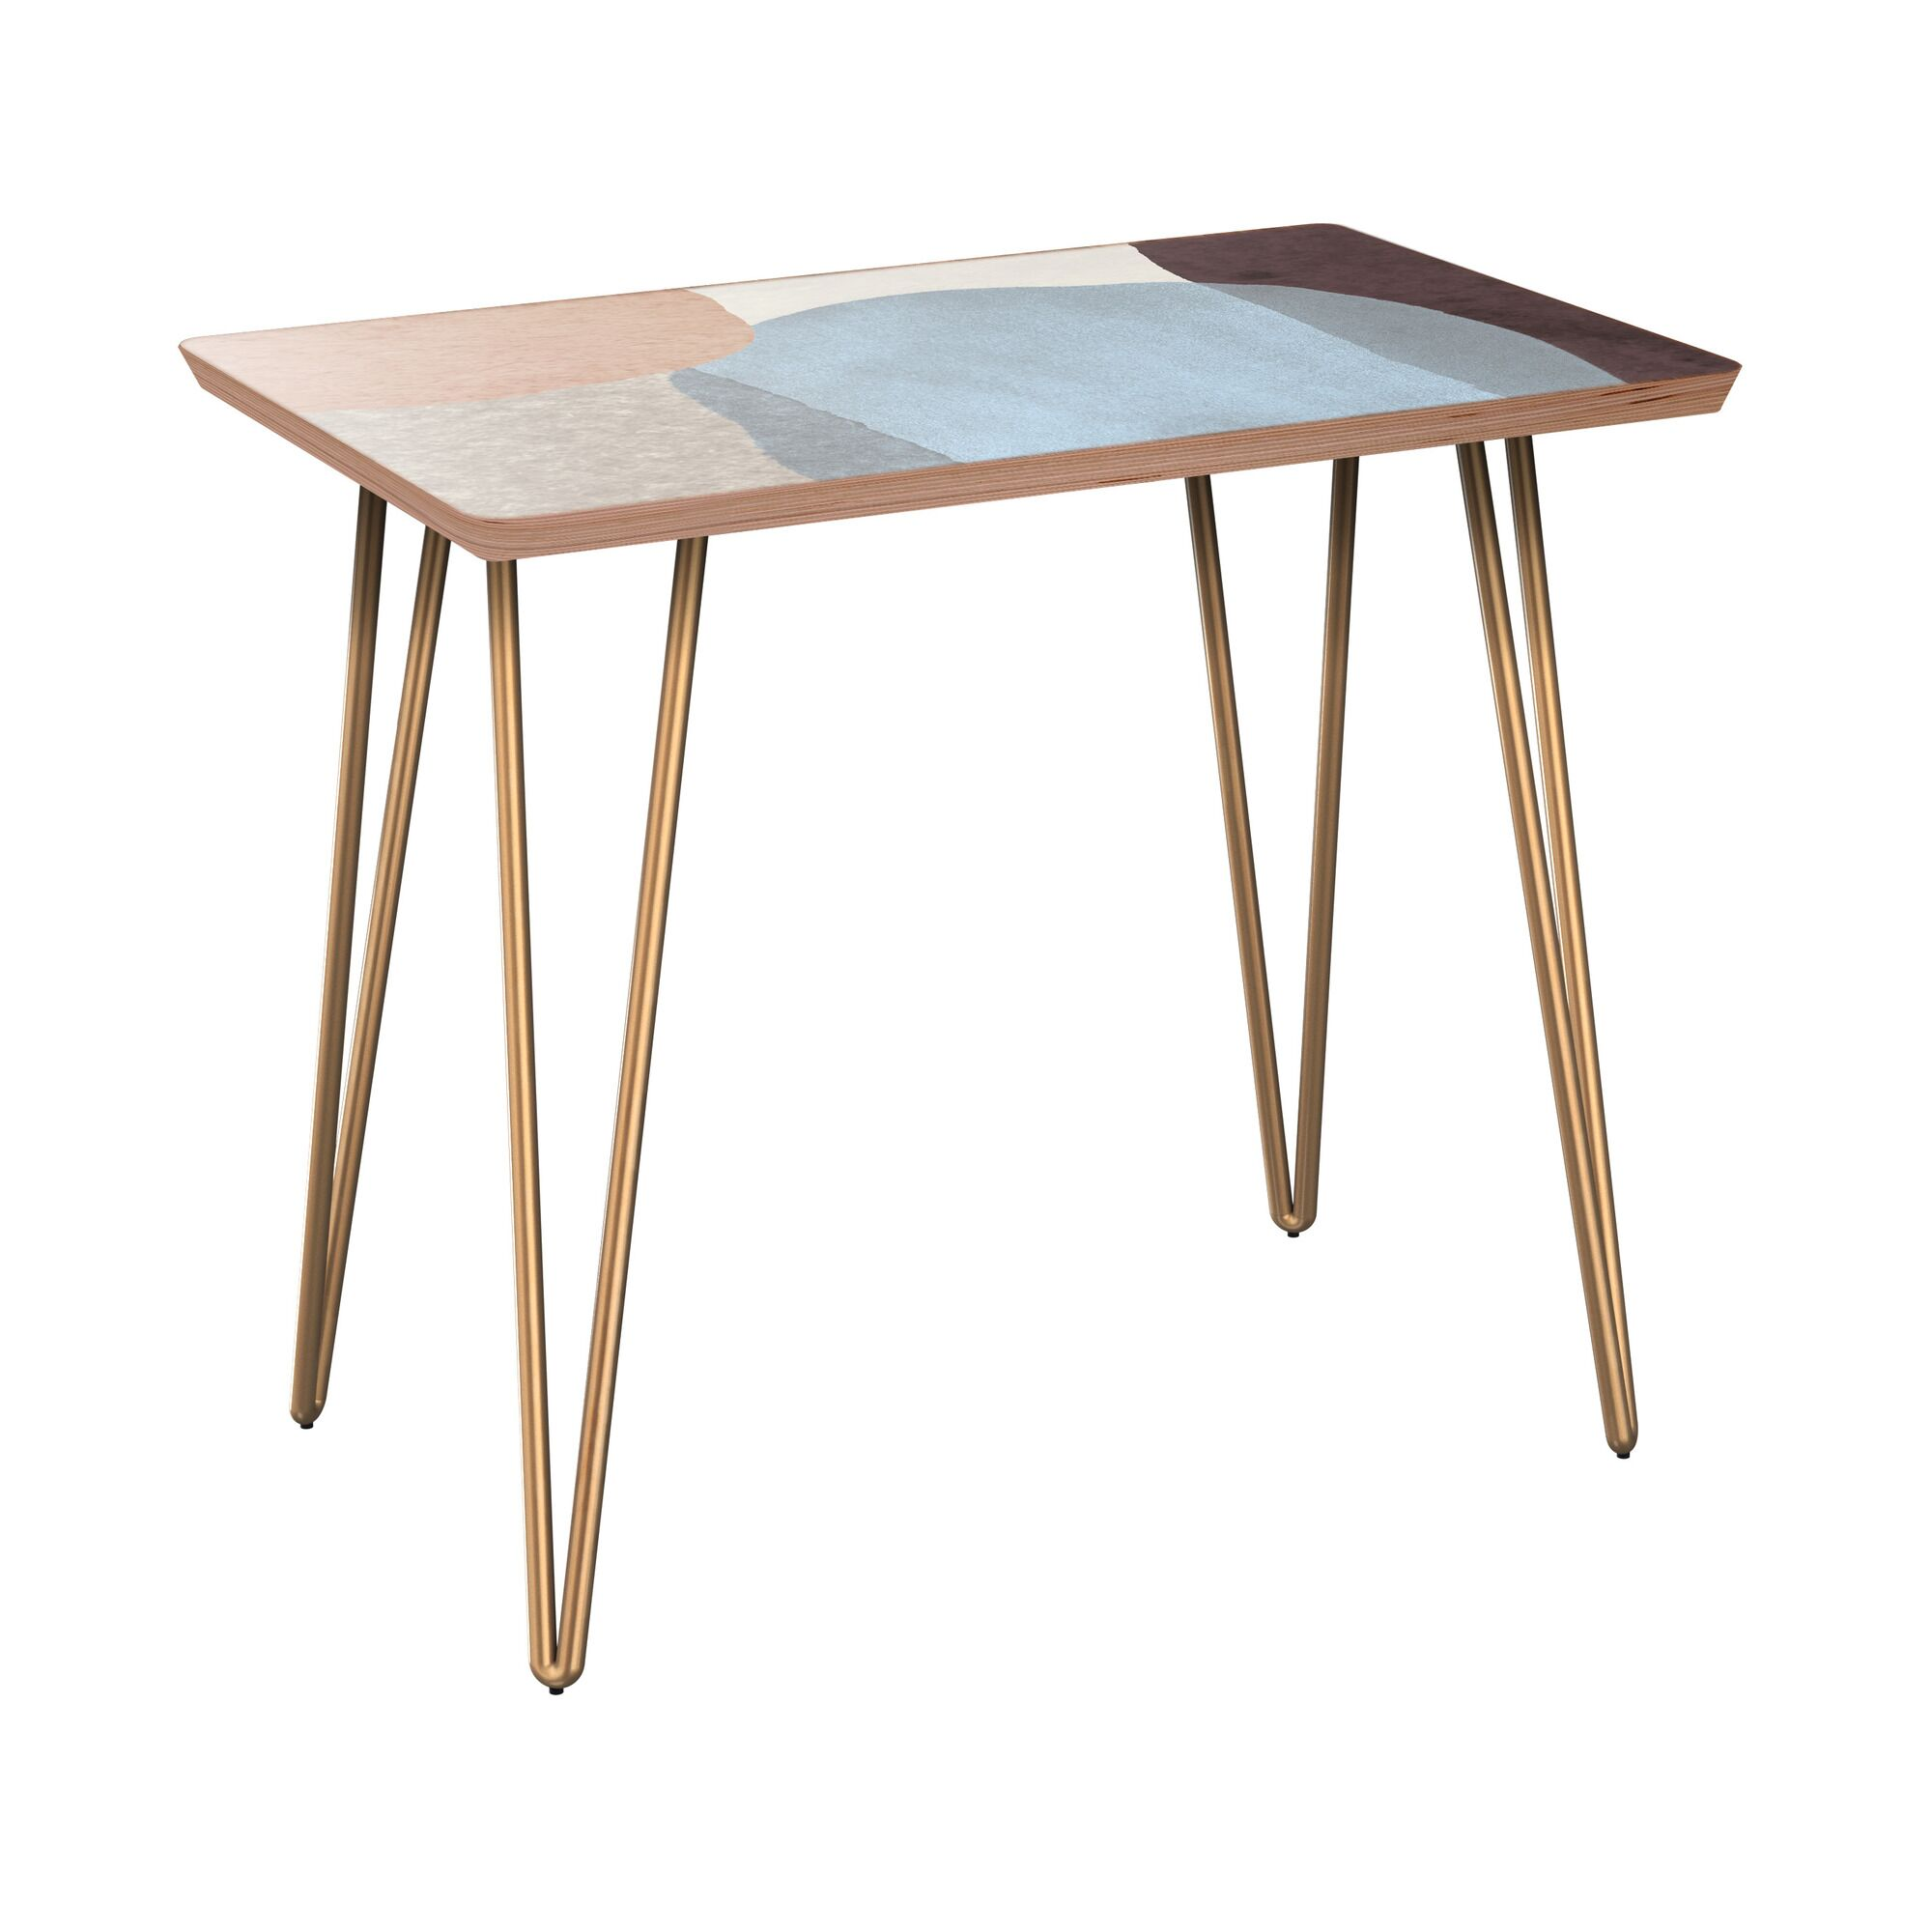 Failand End Table Table Base Color: Brass, Table Top Color: Walnut